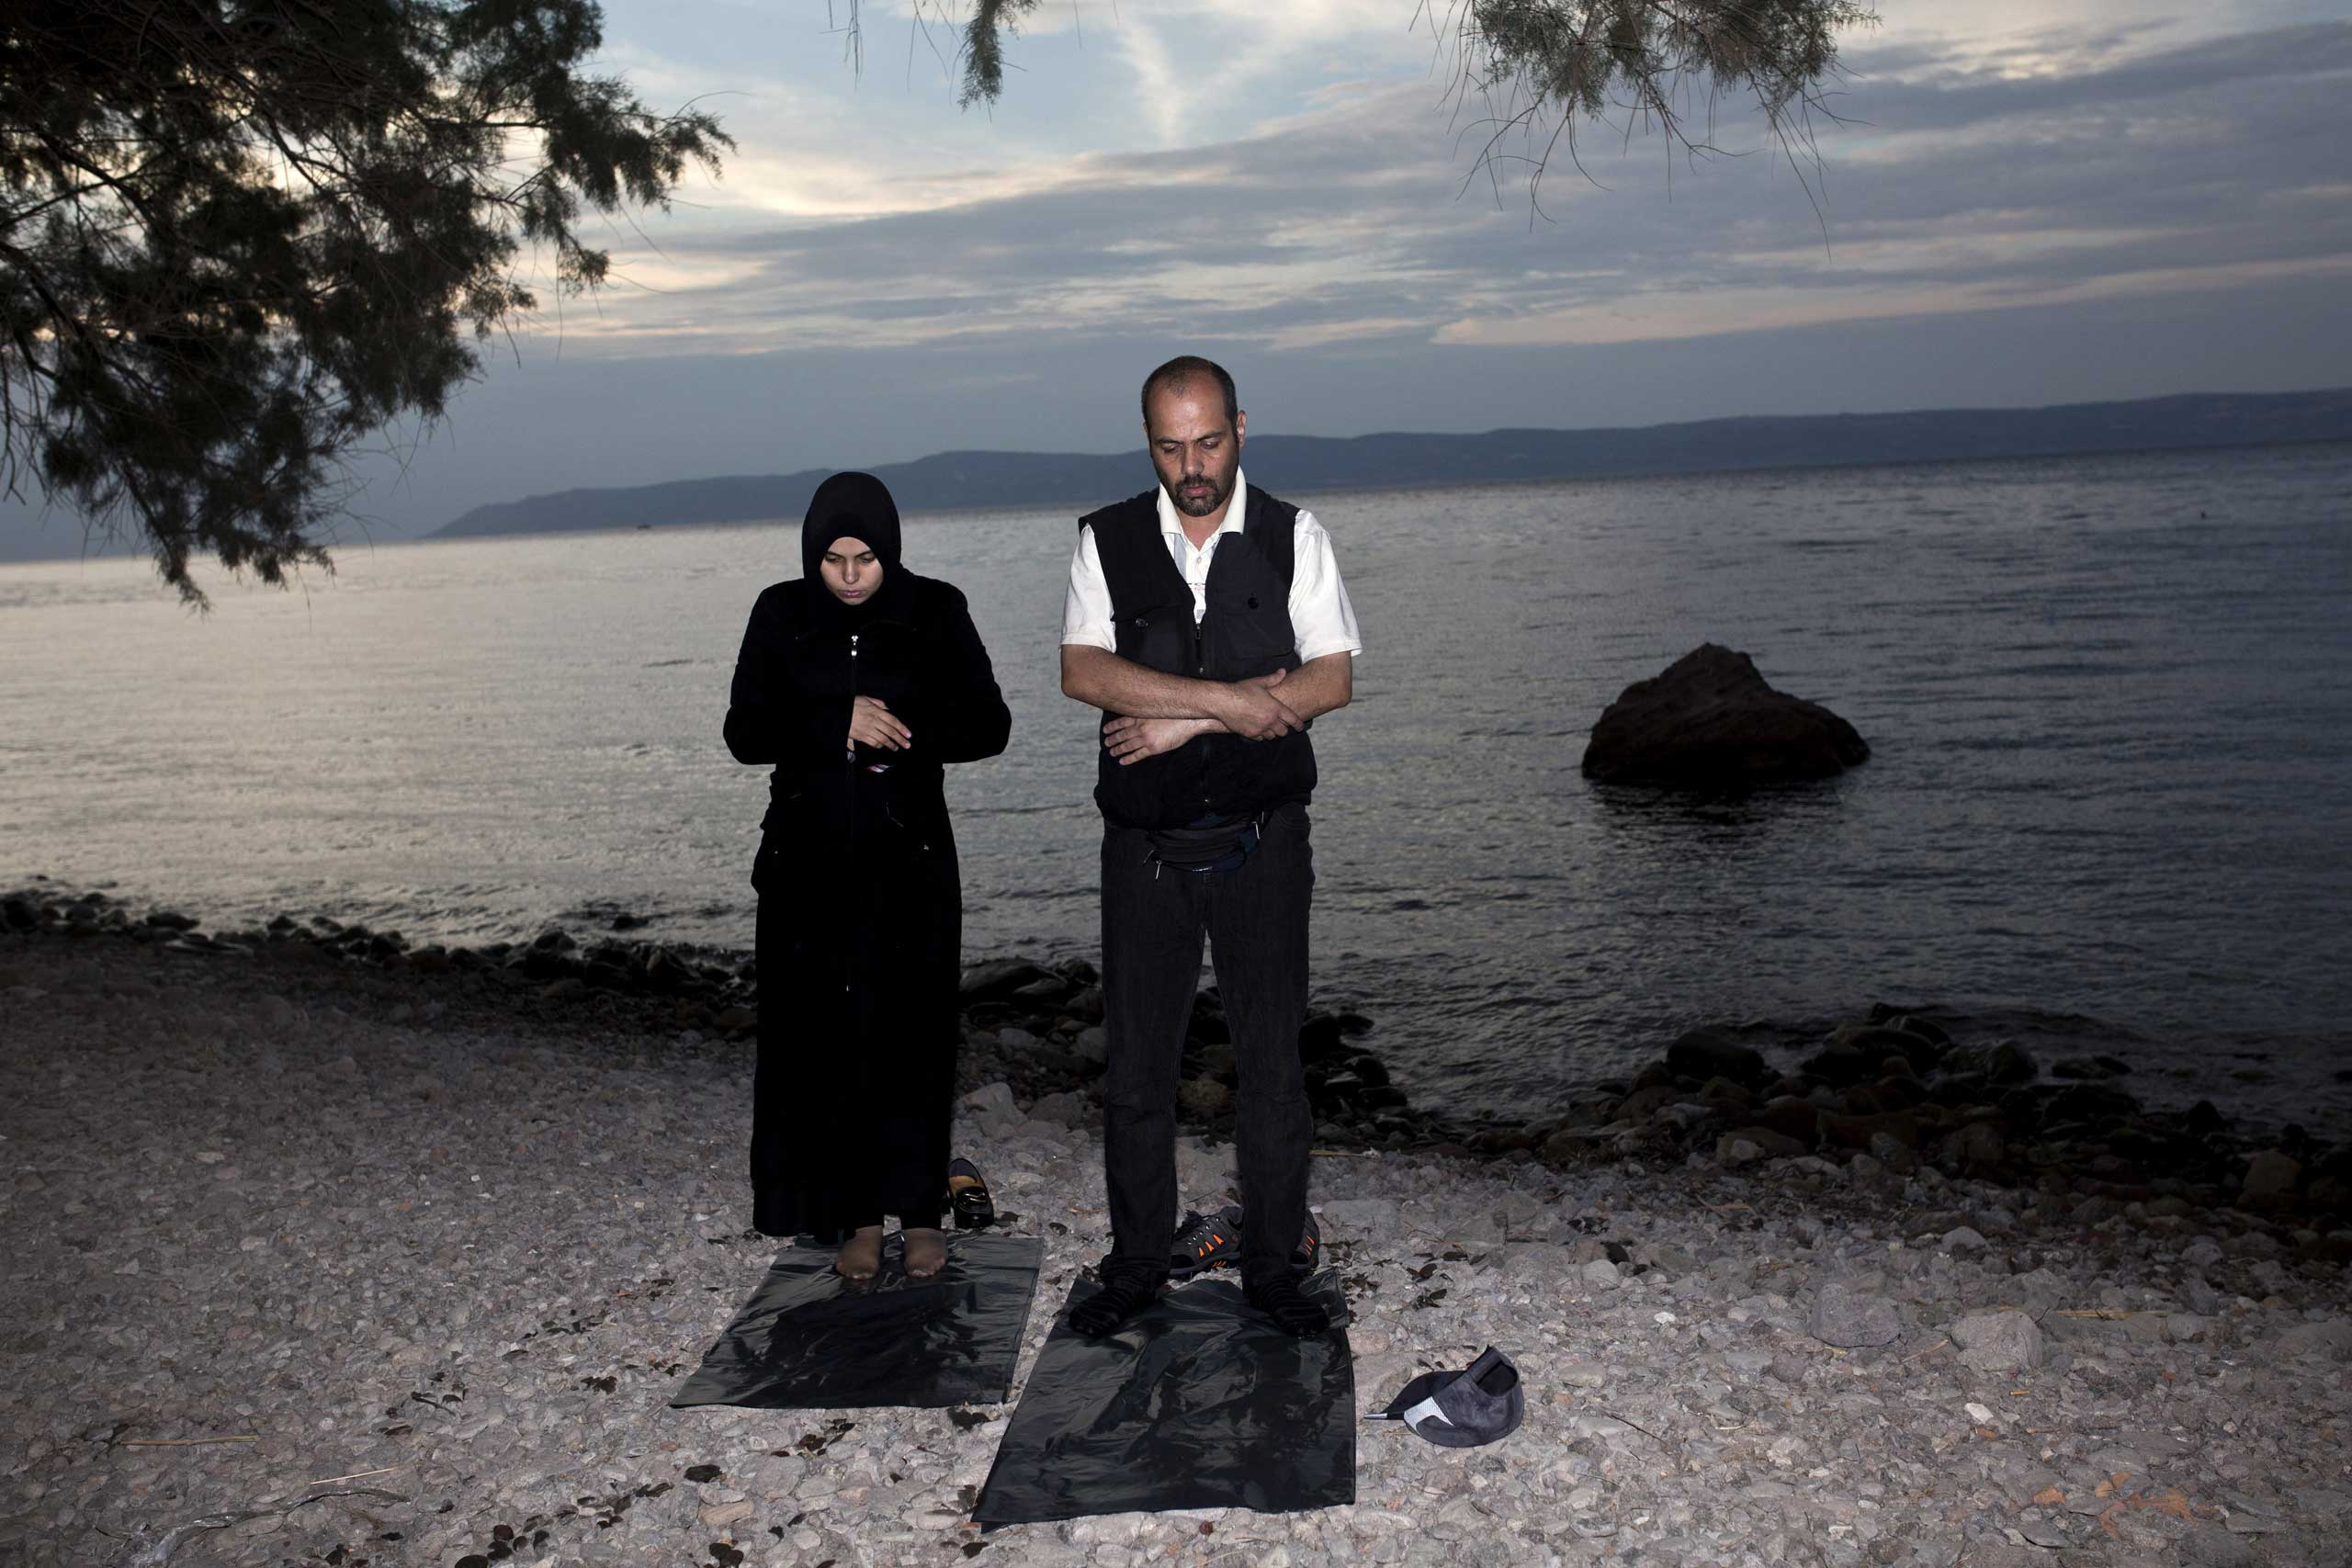 Migrants pray after arriving on the shores of the Greek island of Lesbos, Sept. 9, 2015.